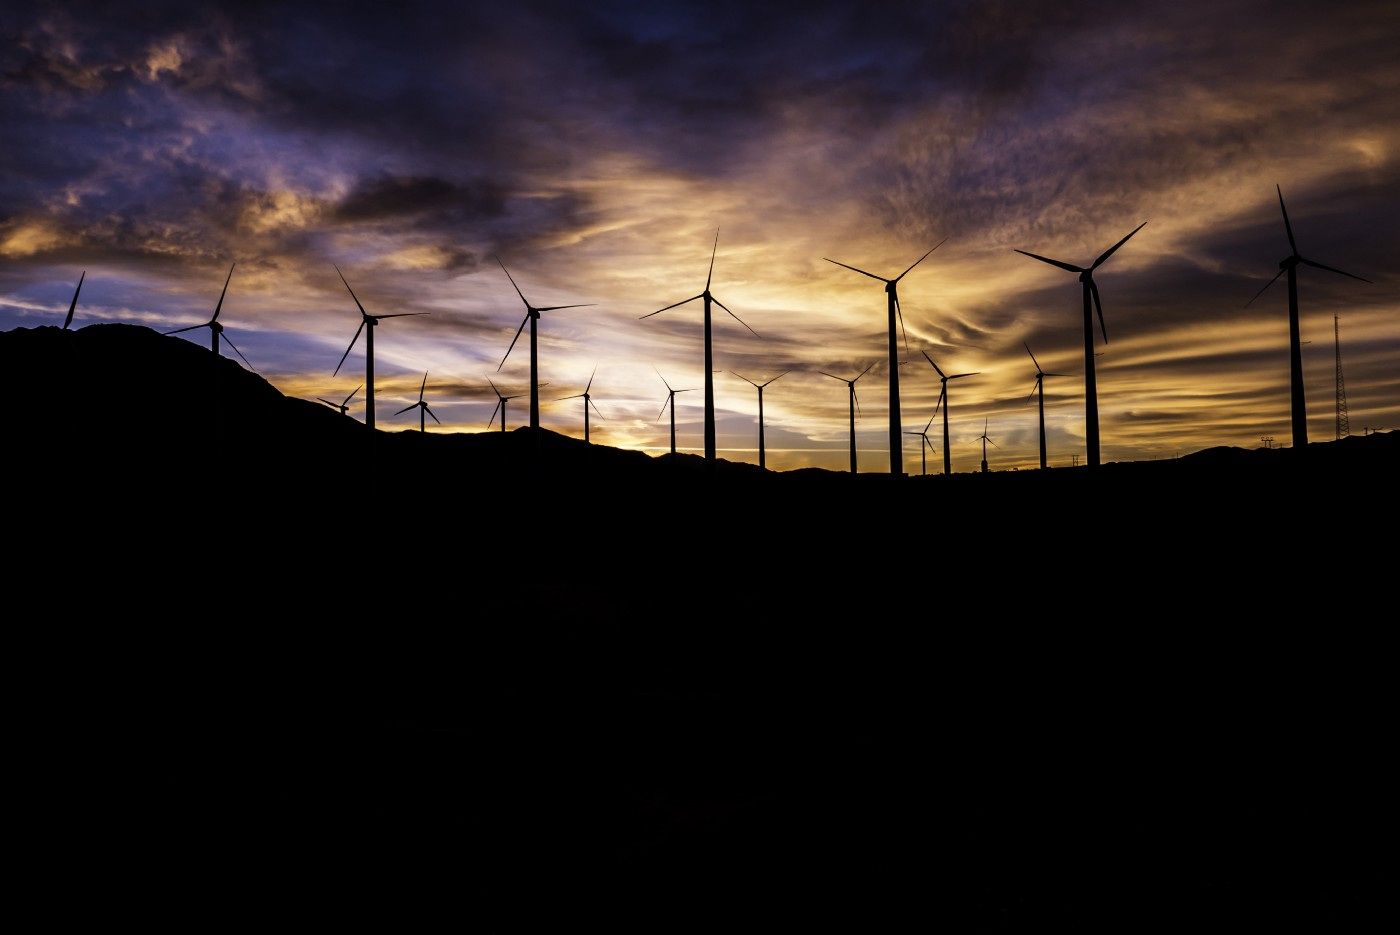 A wide shot of a wind farm with sunset in the background.